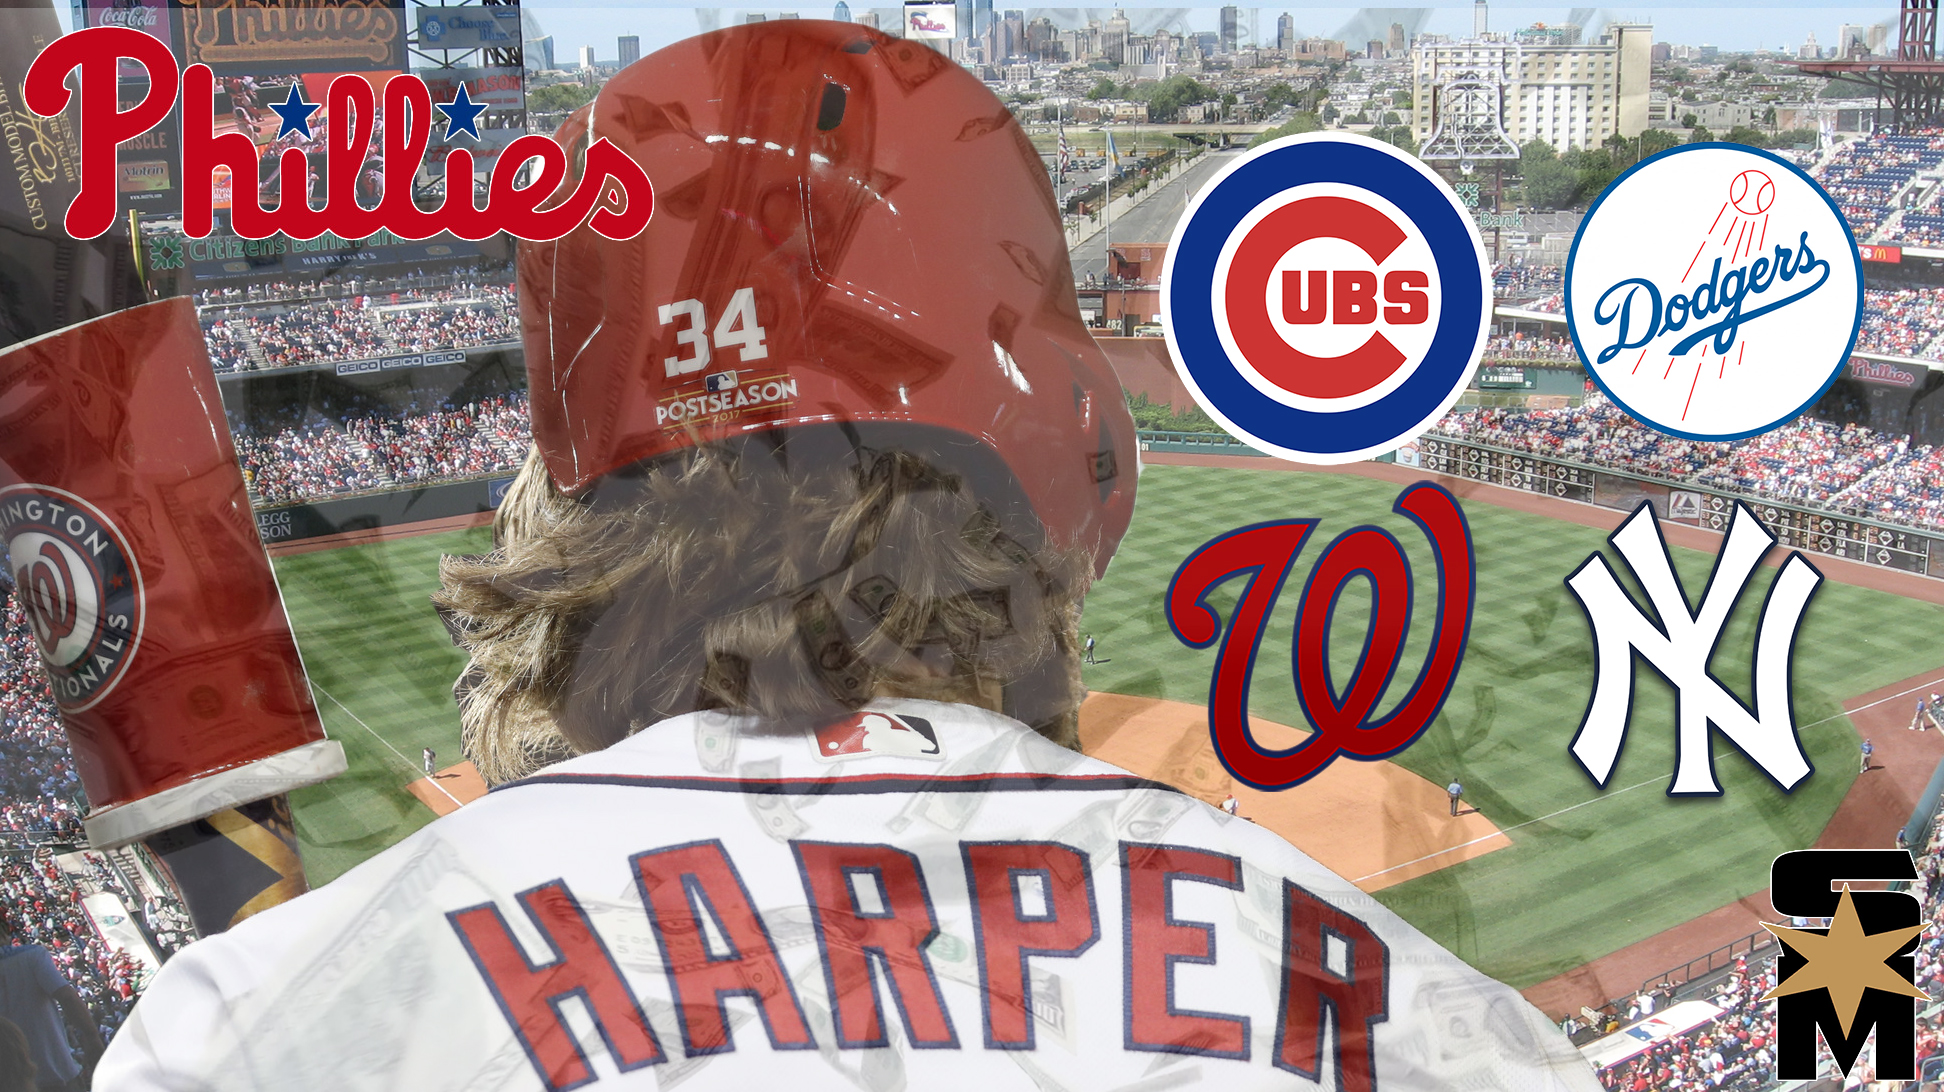 Harper-sweepstakes-1